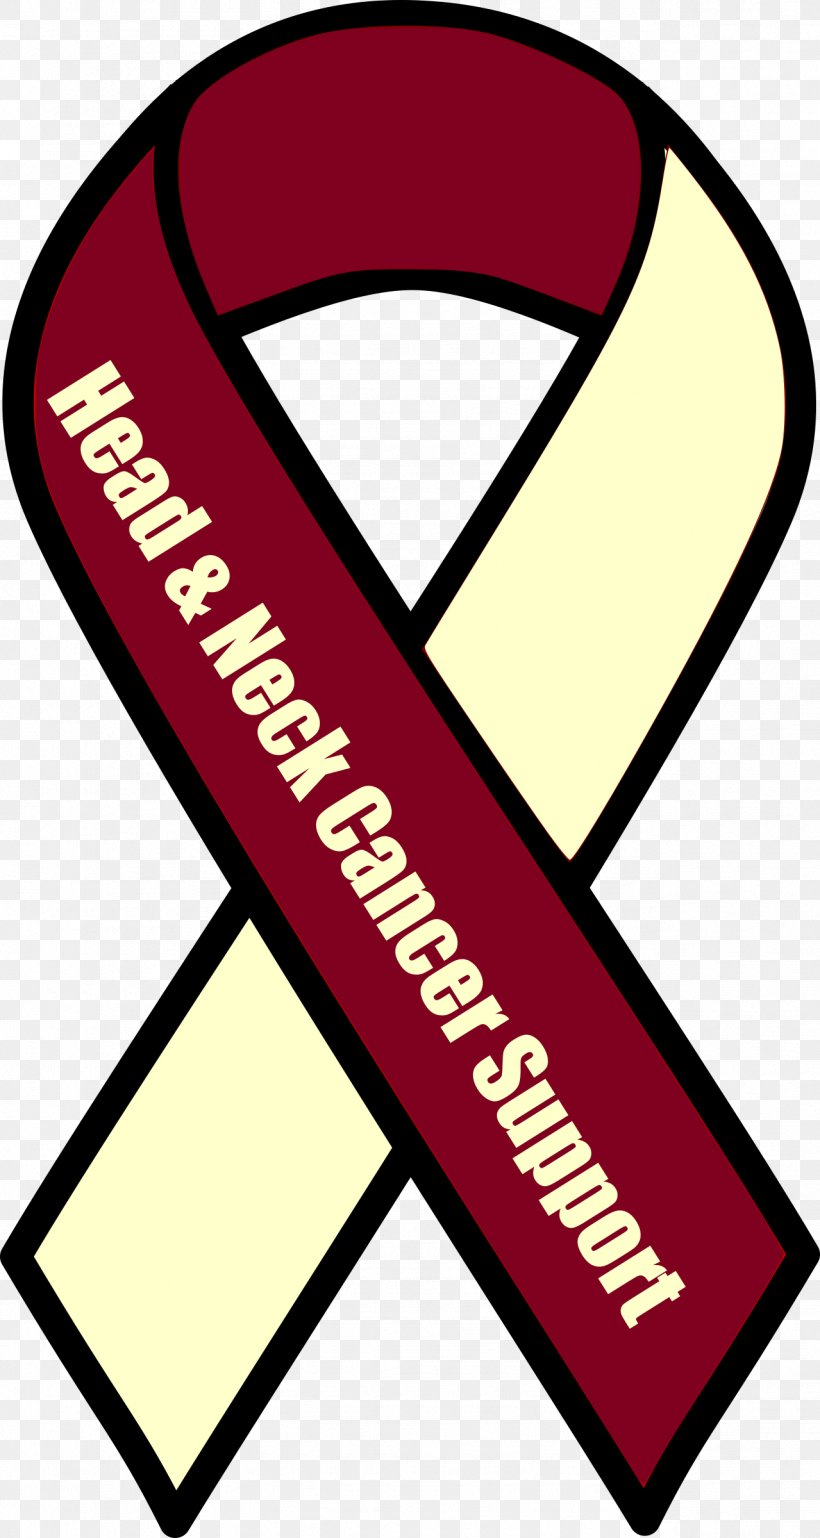 Awareness Ribbon Head And Neck Cancer Pink Ribbon Clip Art.